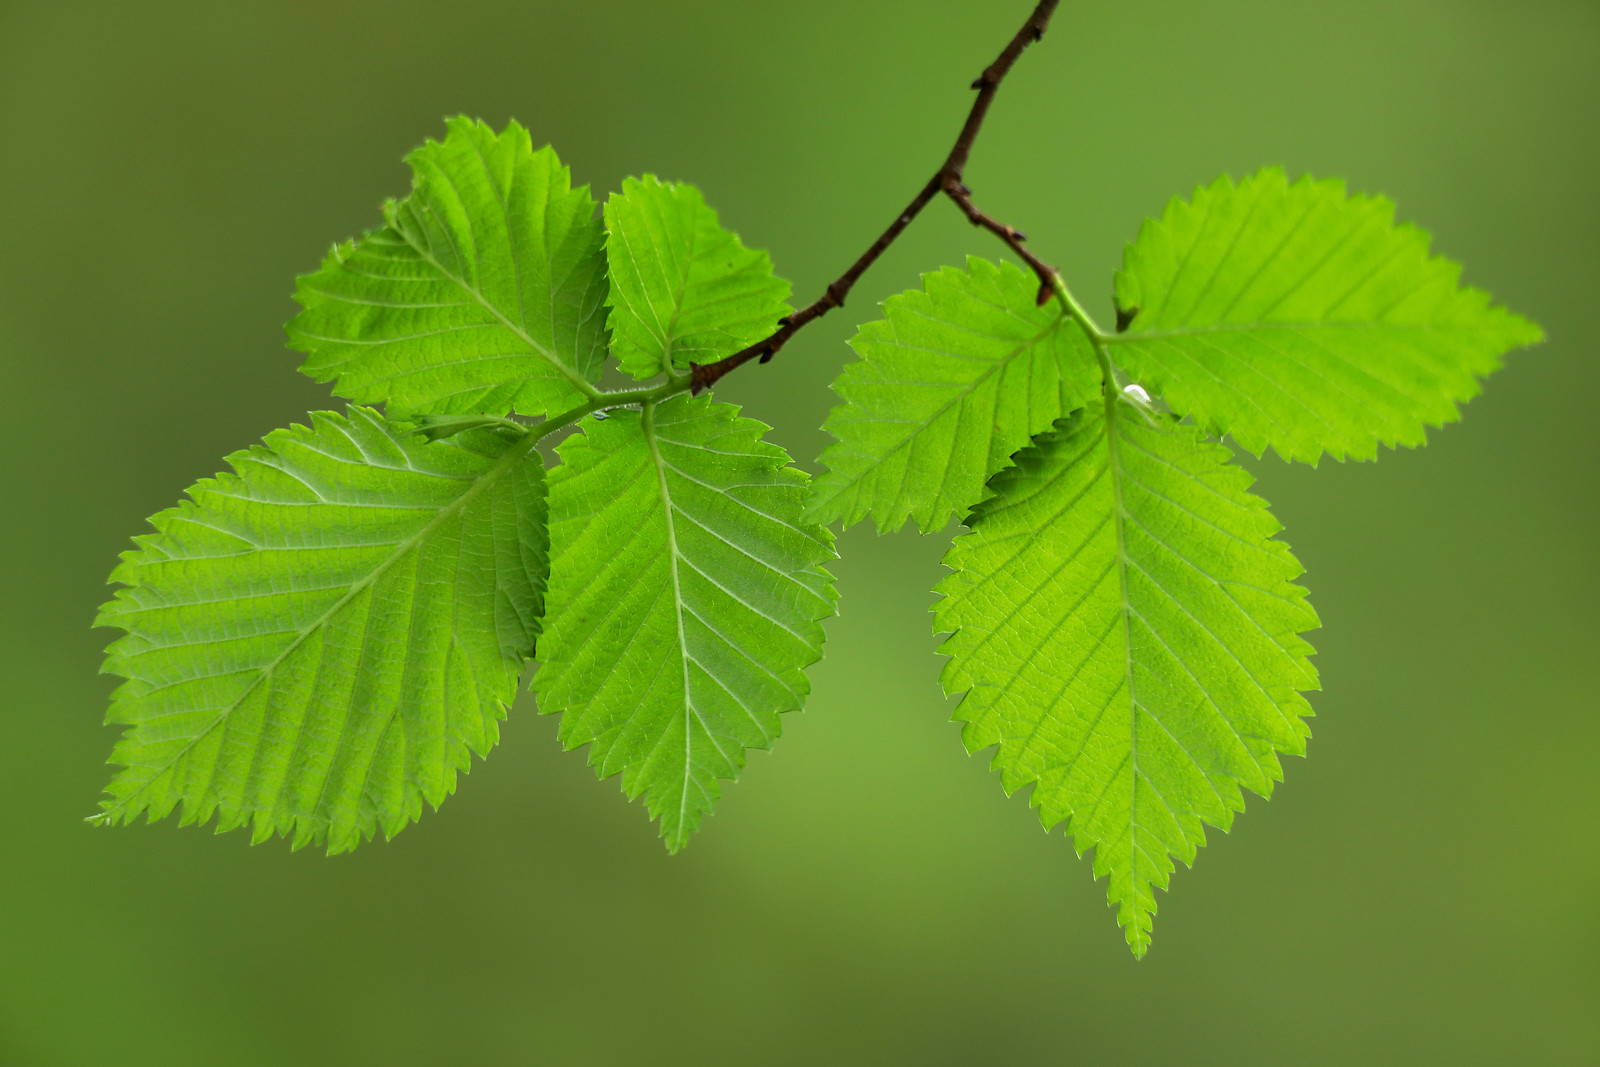 Elm Leaves in Spring